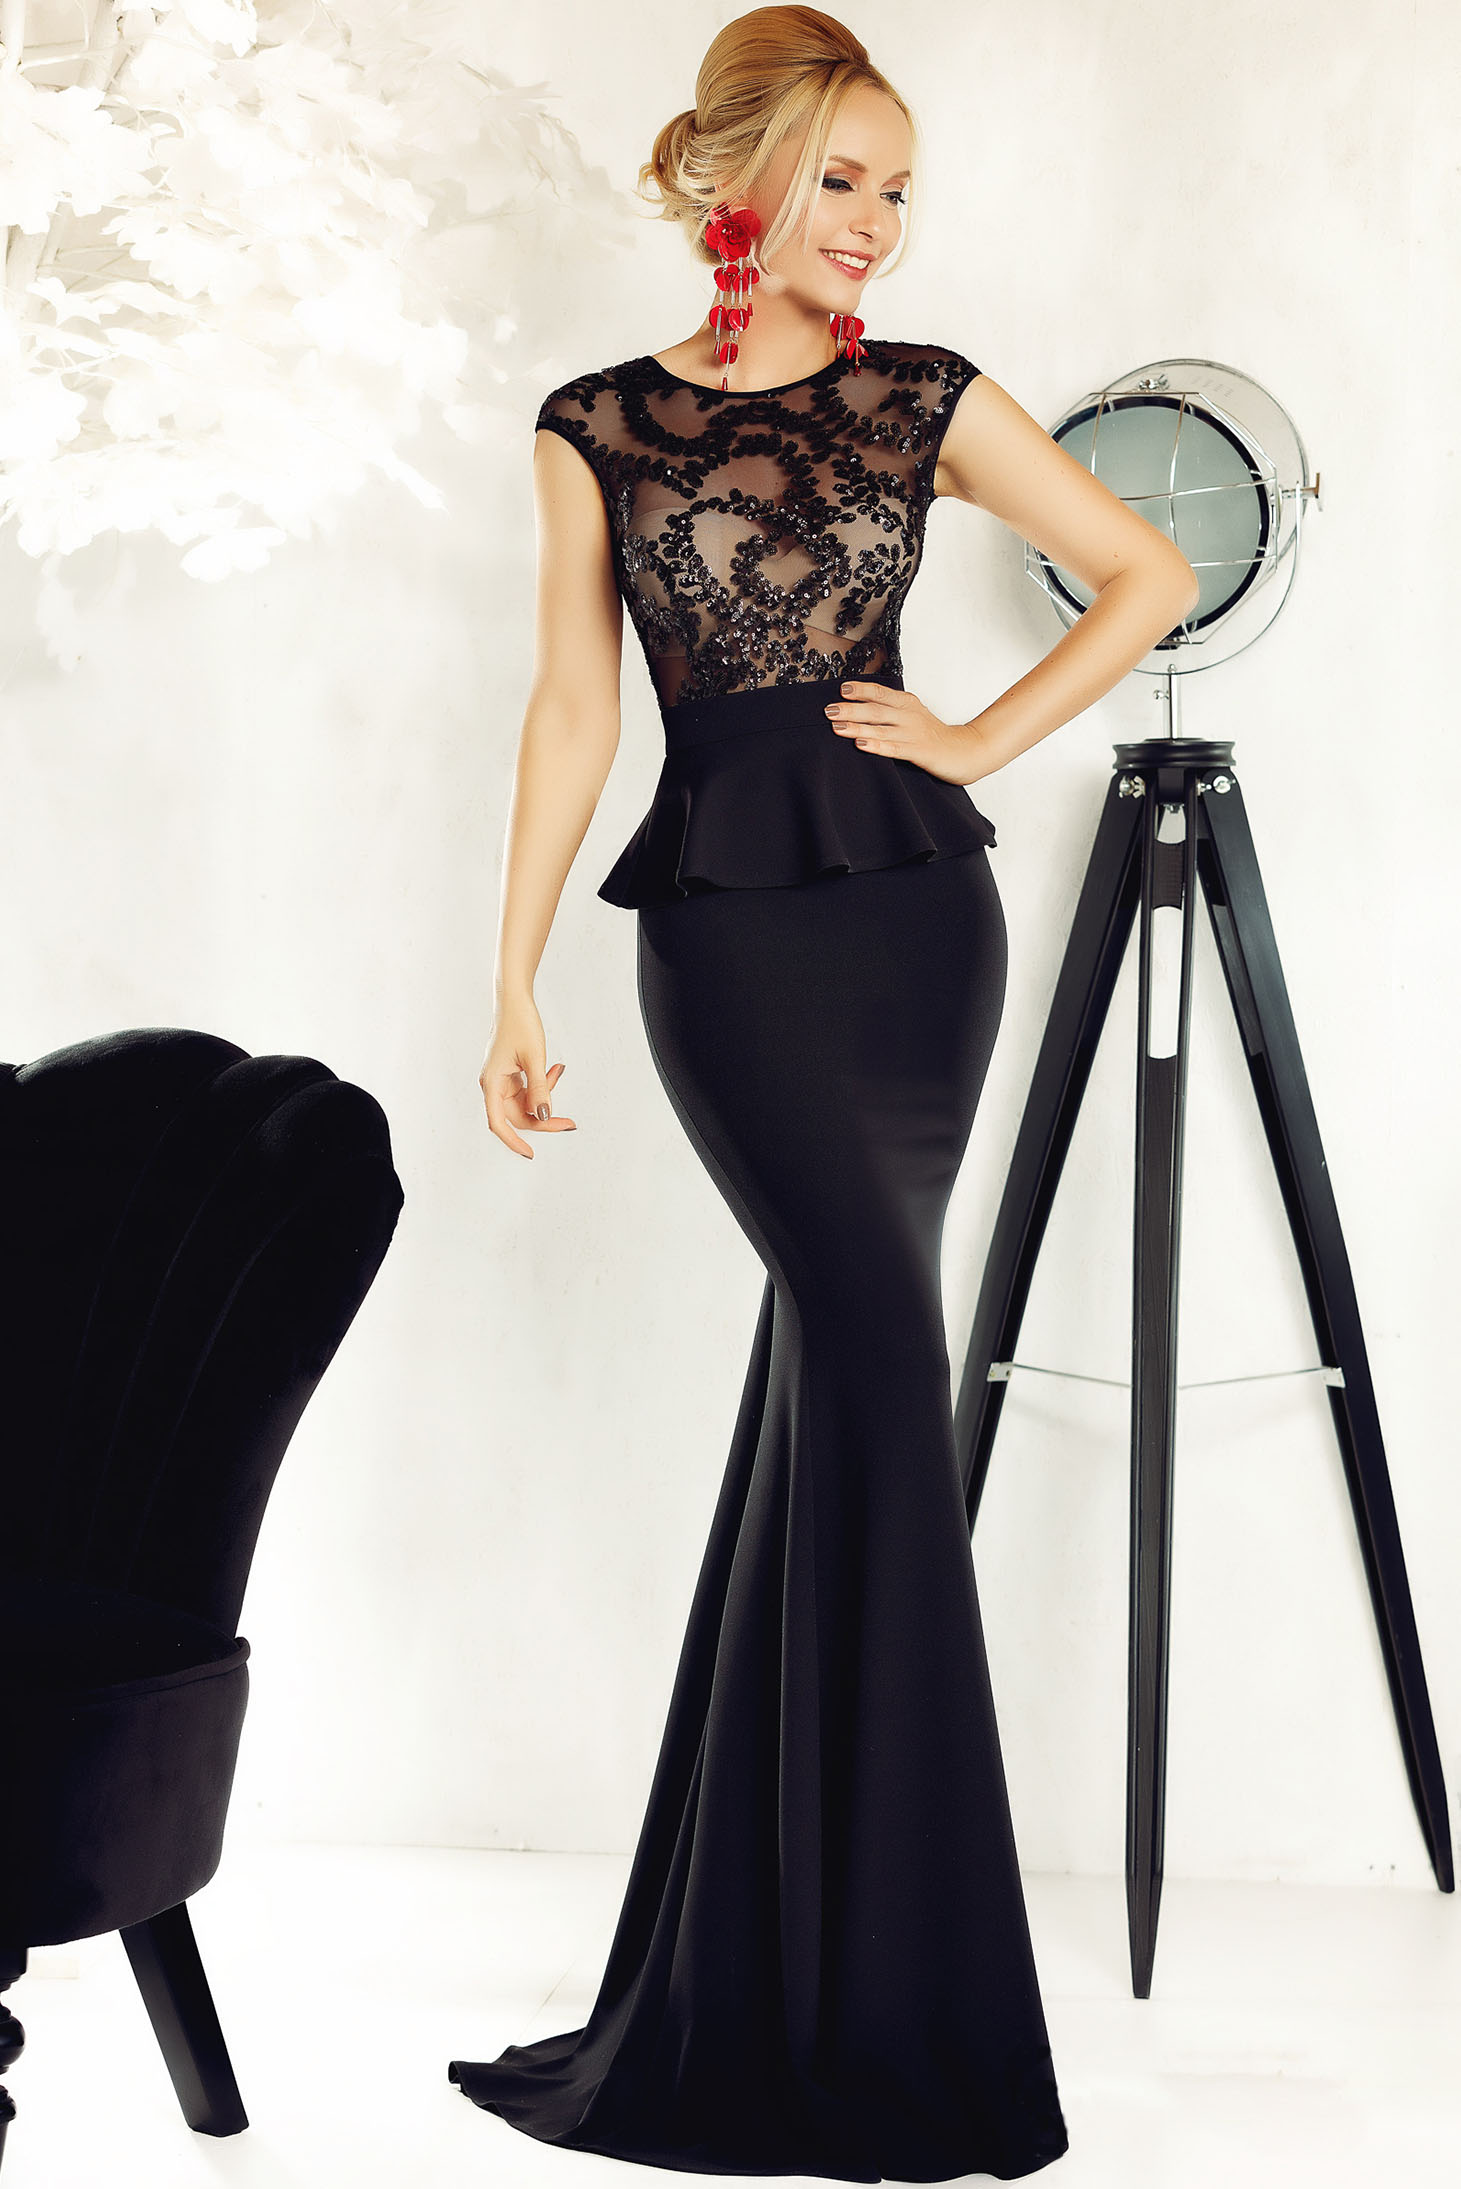 76c1dc1bdf Fofy black occasional mermaid dress with frilled waist with crystal  embellished details